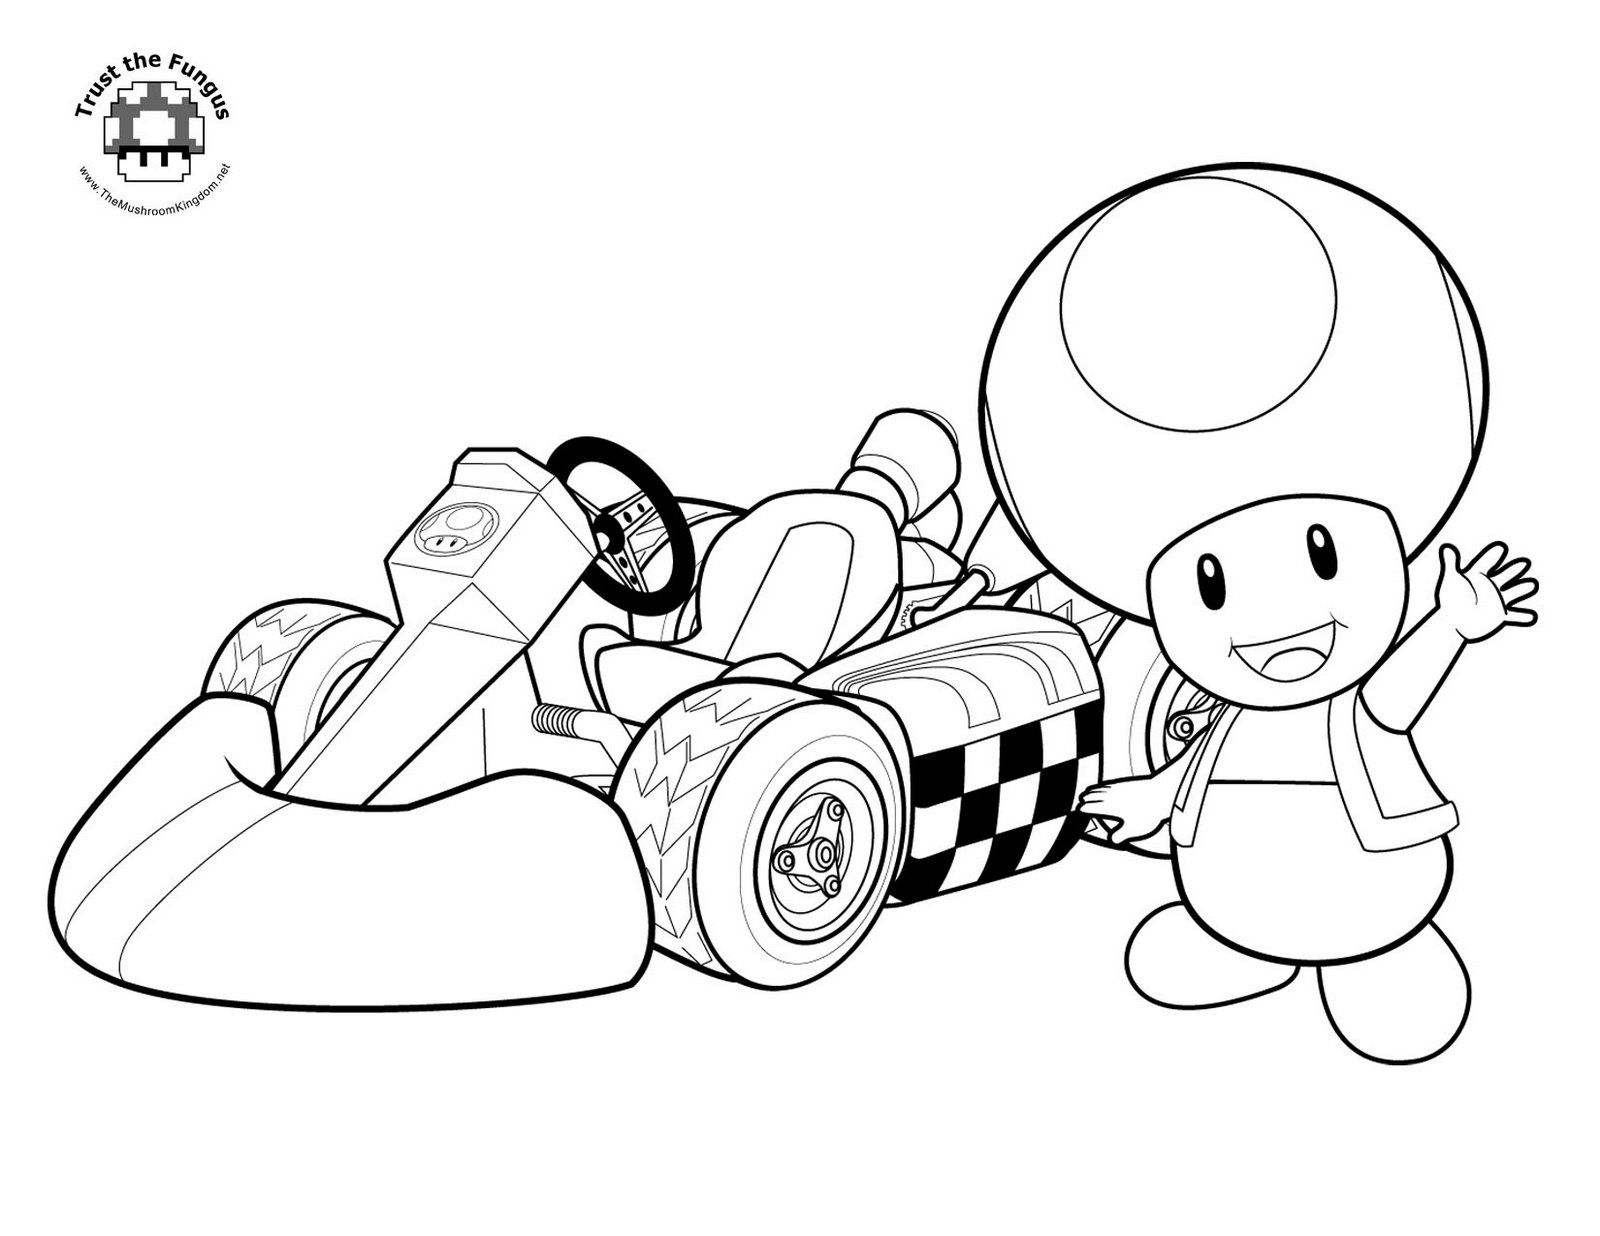 Mario kart coloring pages printable - Free Printable Coloring Pages Mario Kart High Quality Coloring Pages